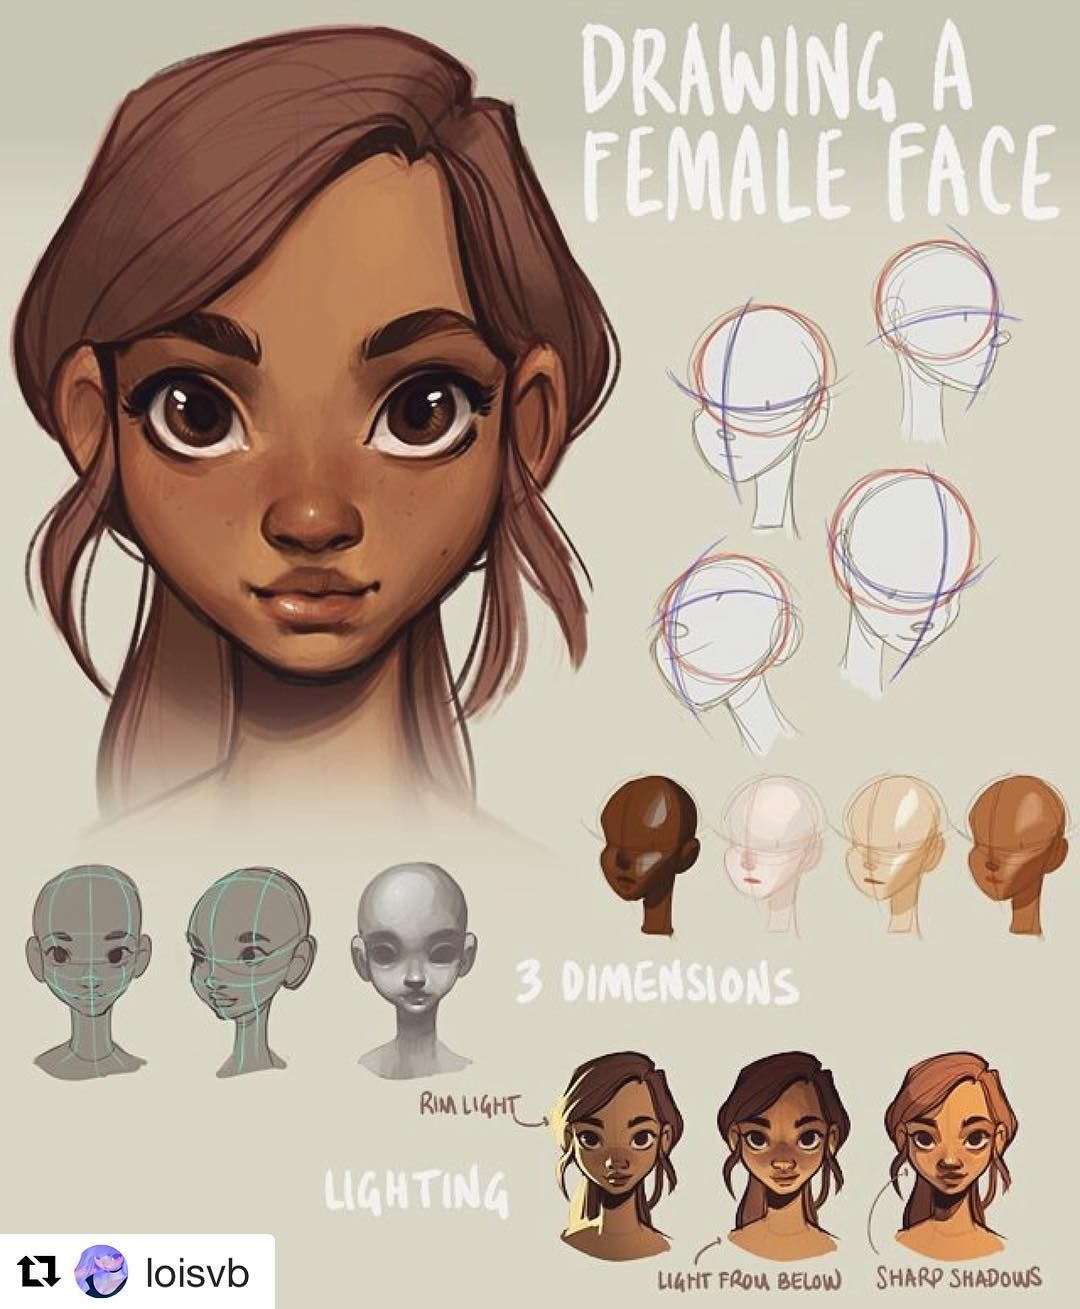 #wooolikes @loisvb Amazing Loish and her tutorials Since I posted a mini-tutorial on drawing a head yesterday I figured I'd let you guys know about this tutorial I made last year! It's about how to draw a (female) face and is much more in-depth than yesterday's mini-tut. Link is in my bio hope you find it useful! #tutorial #headdrawing #illustration #illustrationartists #artistsoninstagram #digitalartists #instalike #wooomic #girl #regram #likes #repost #repostapp #learning #learningtodraw…